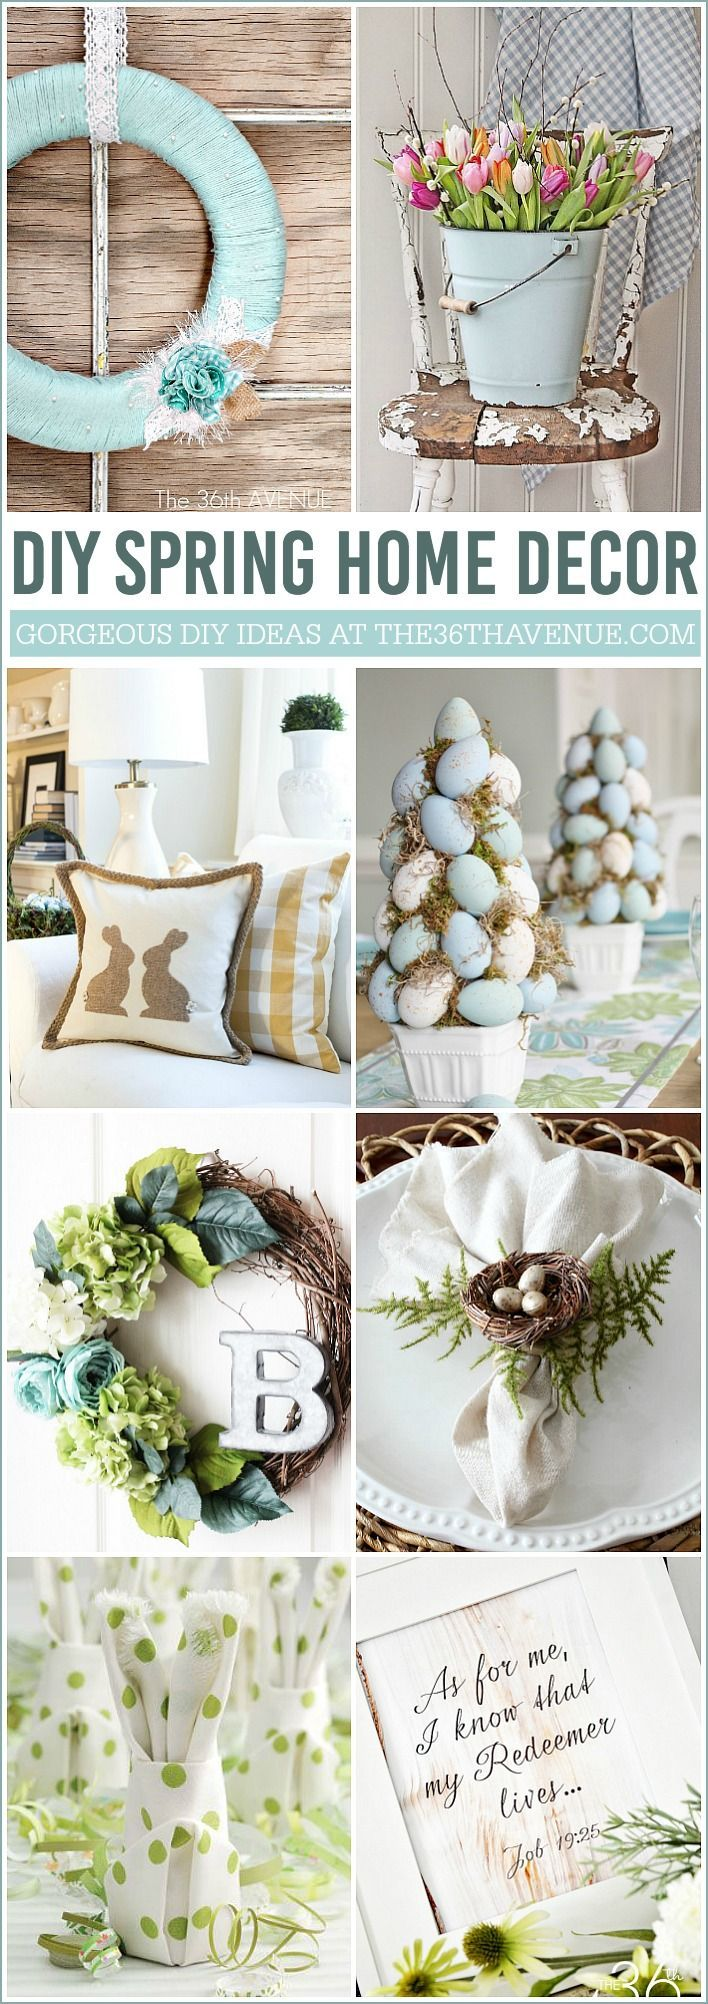 Best Easter Diy Spring Home Decor Beautiful The Winter And This Month